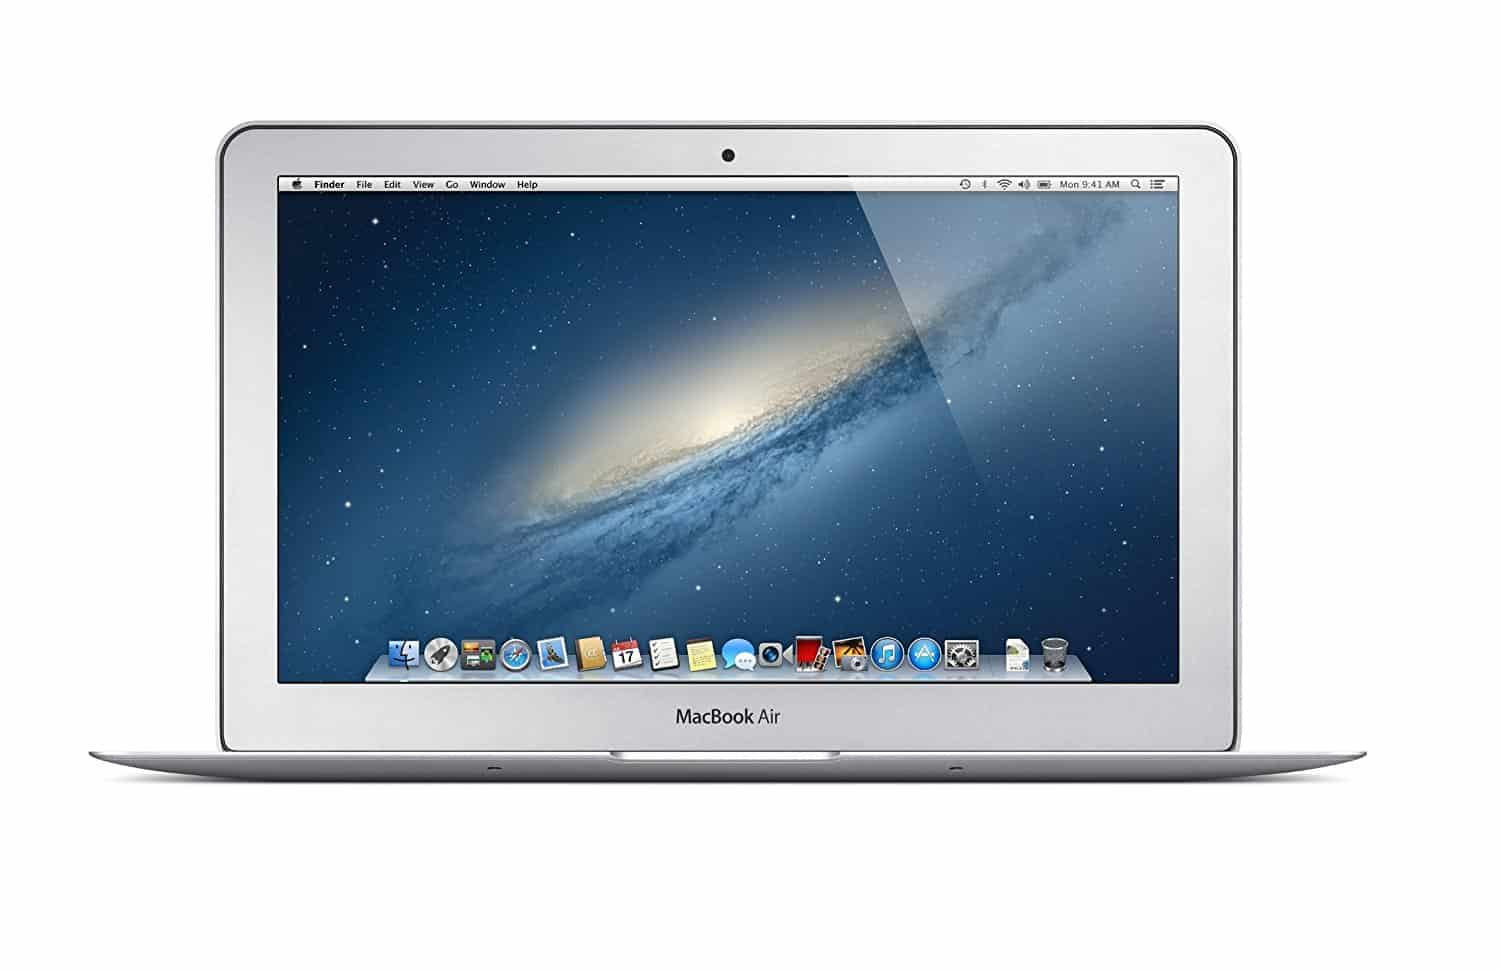 You can save $50 on an 11-inch refurbished MacBook Air.